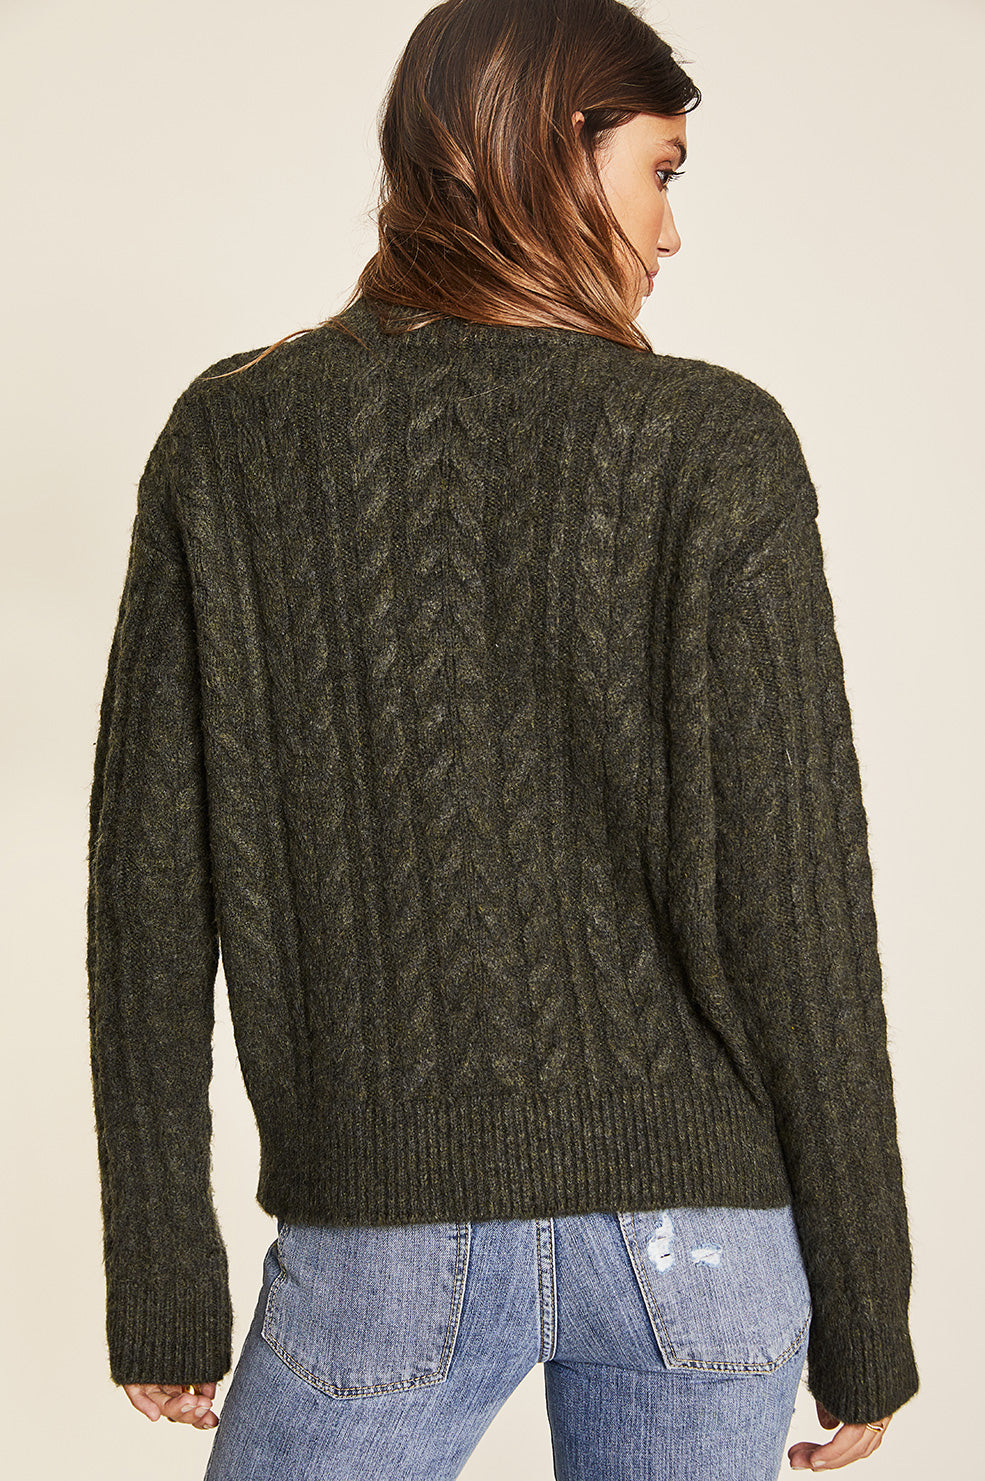 Lovely Pepa Collection | Vermont Cable Knit Sweater - Army Green